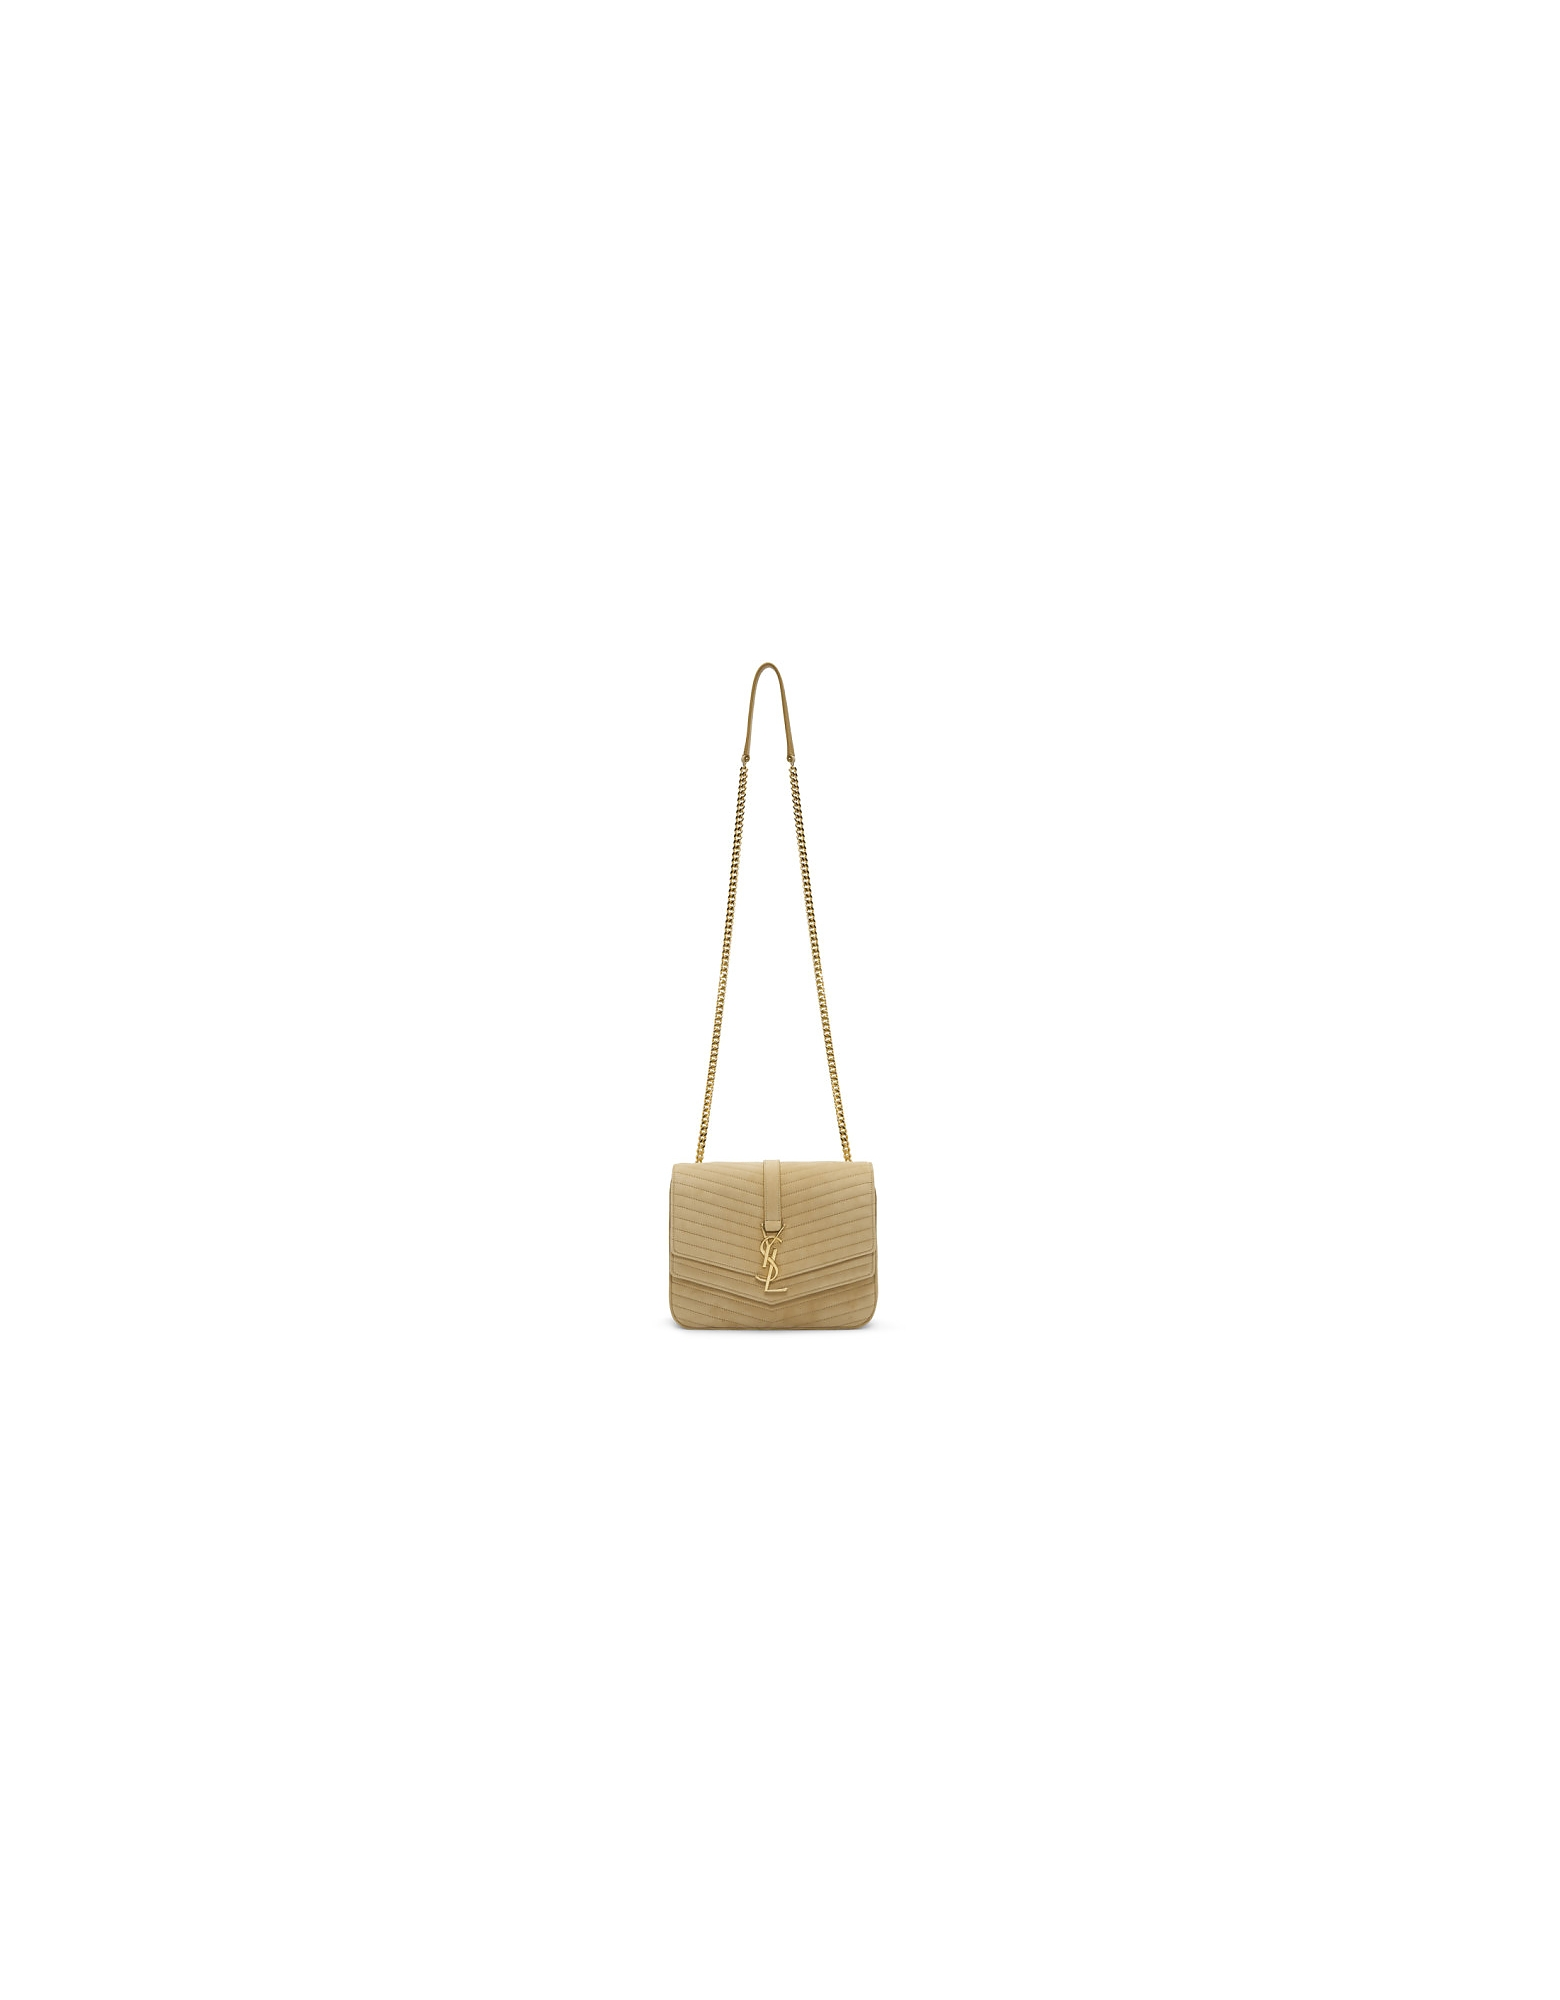 Saint Laurent Designer Handbags, Beige Suede Medium Sulpice Bag